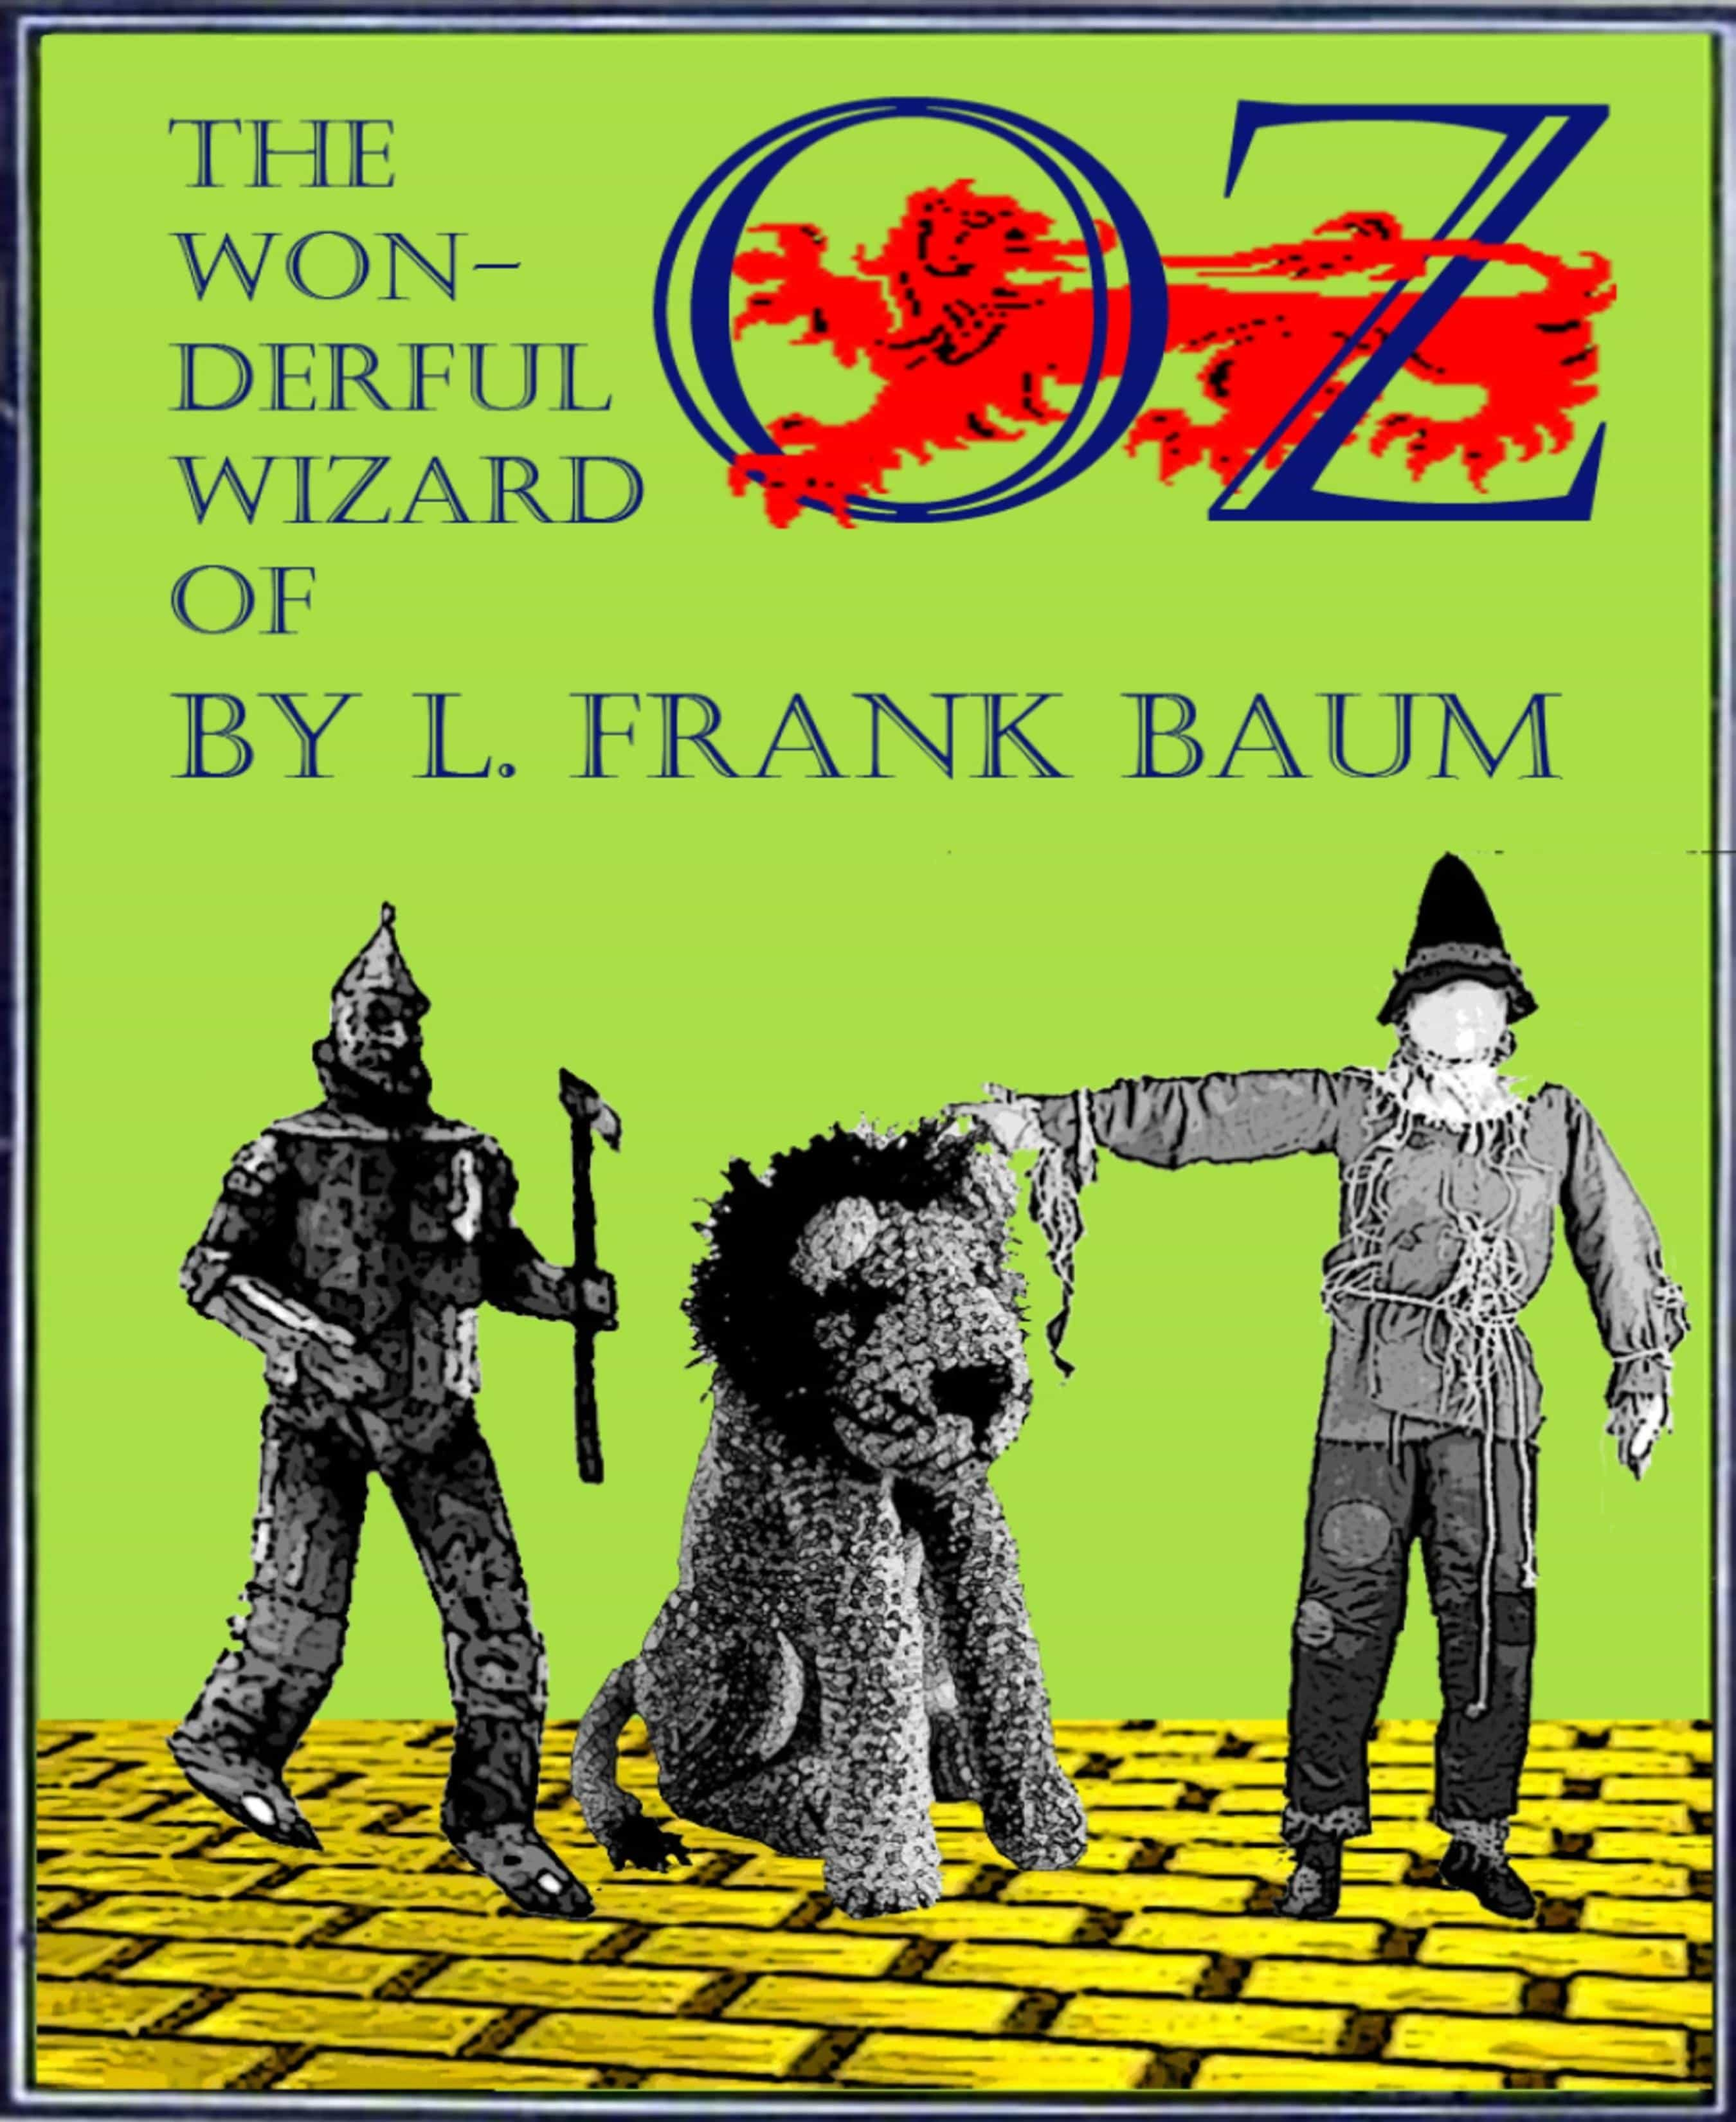 THE WONDERFUL WIZARD OF OZ (ILLUSTRATED)